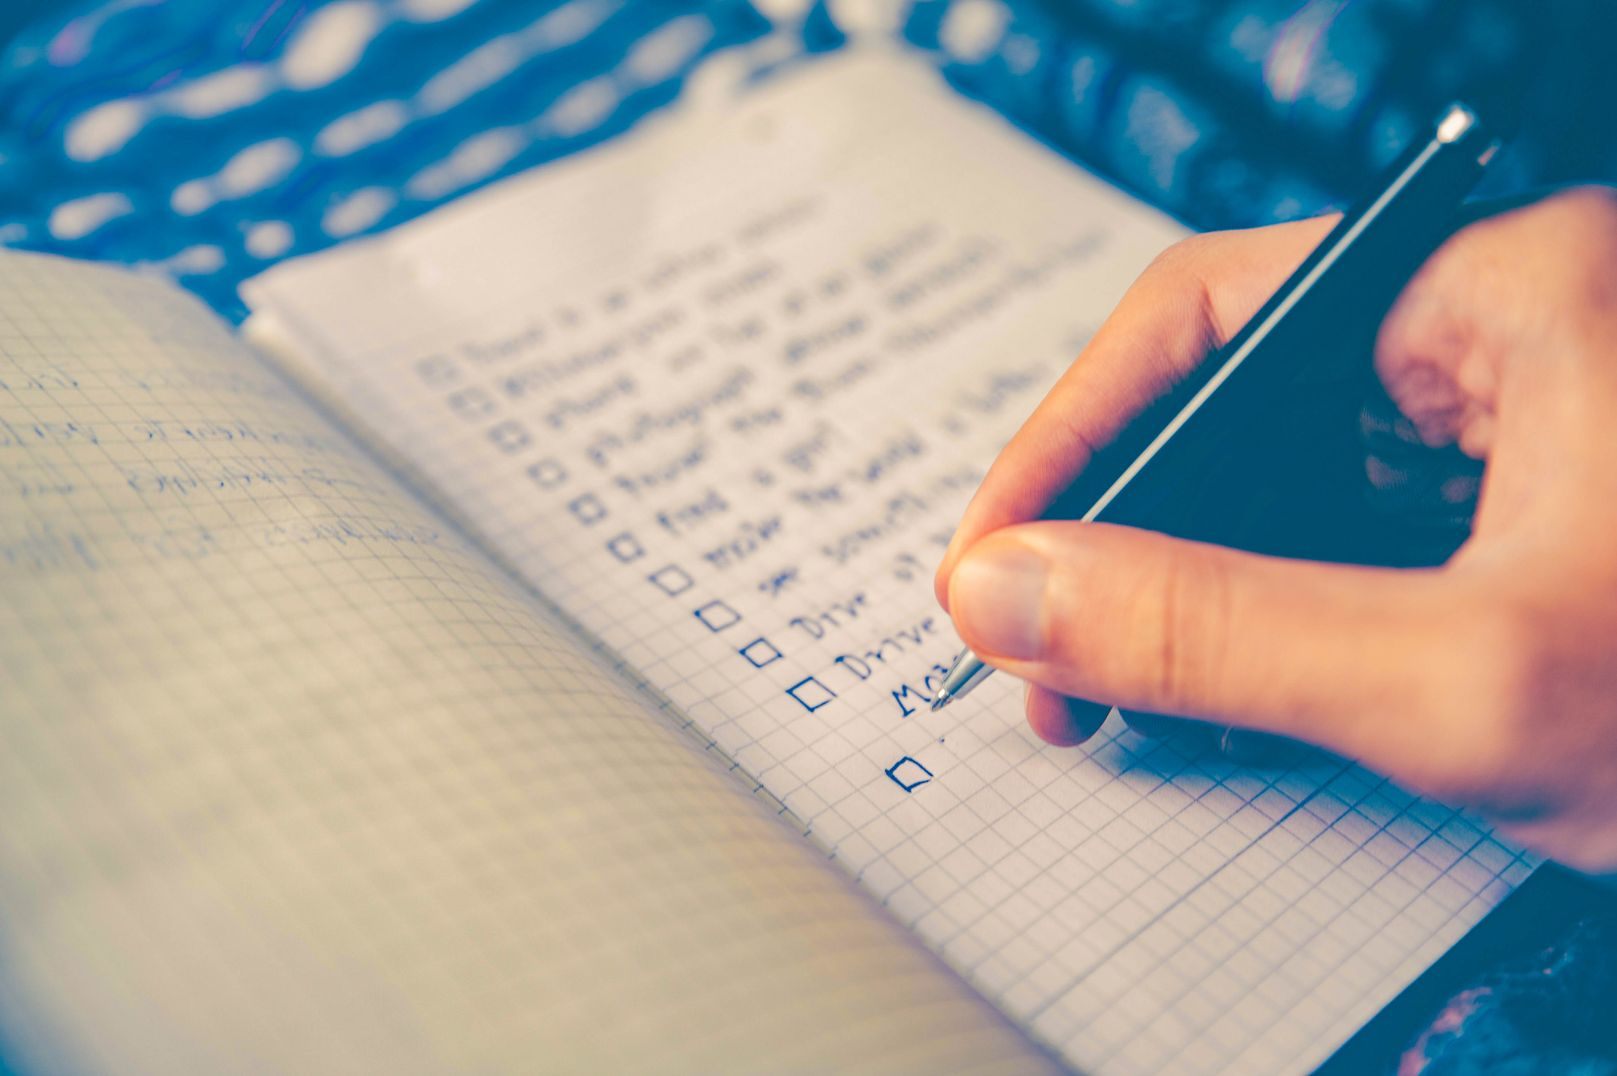 Hand holding a pen, writing a to-do list on a notebook, indicating that knowing how to prioritize tasks is crucial to effective time management